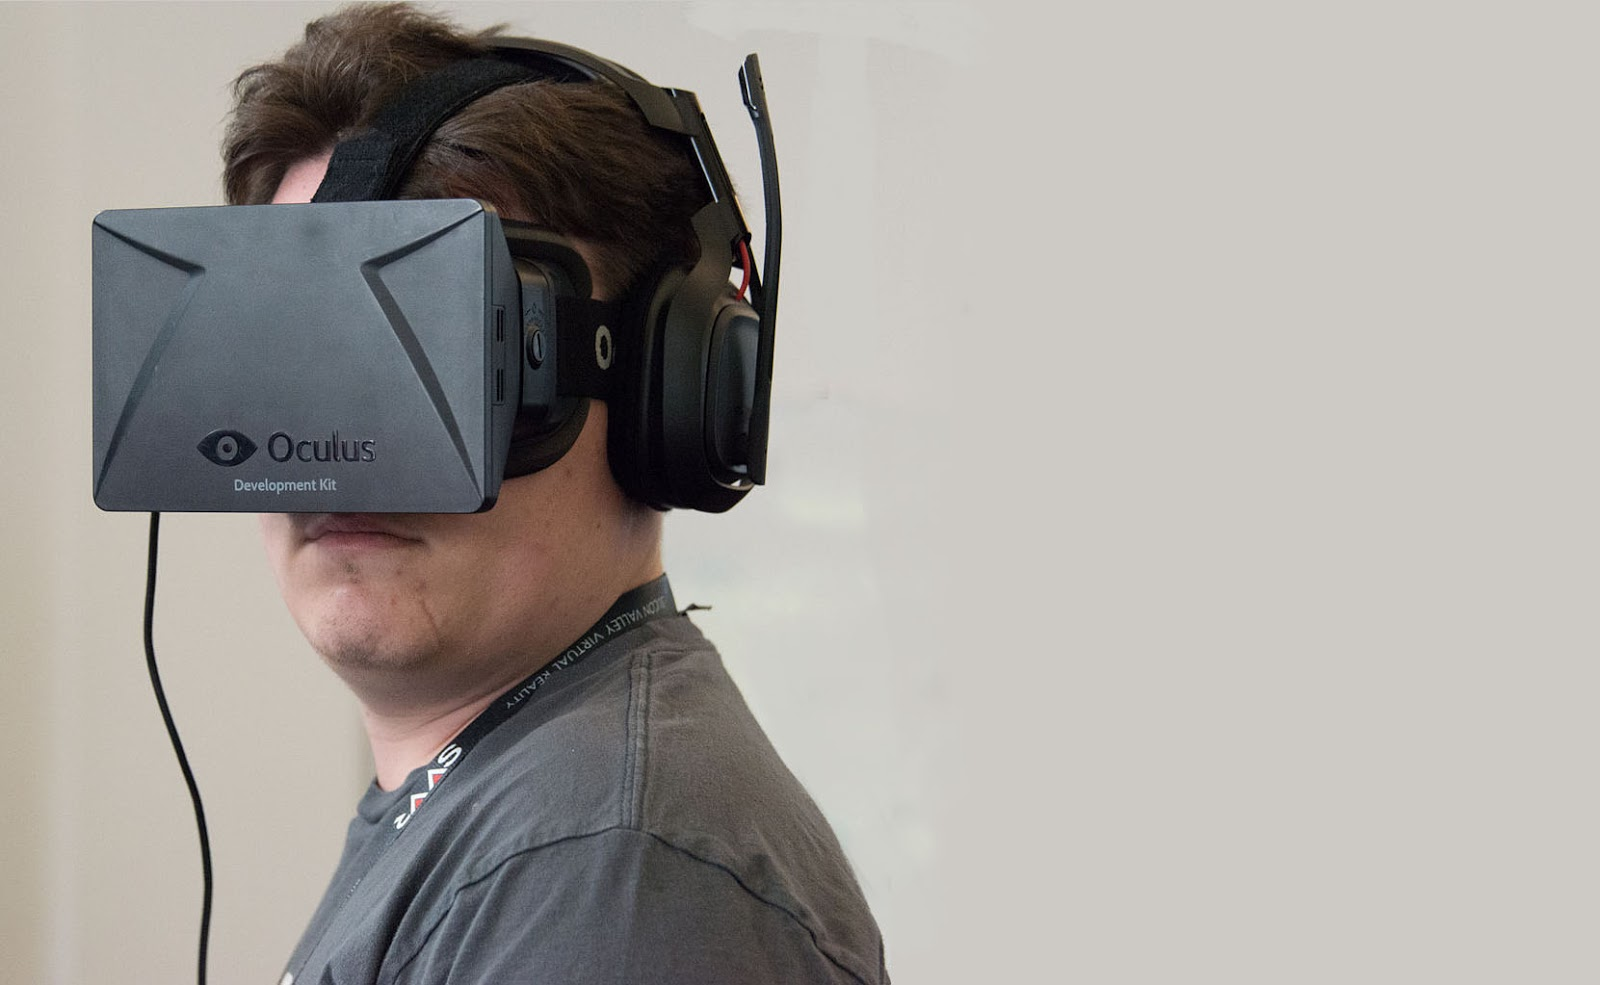 Oculus Rift Dev Kit 1: Raise Capital by Crowdfunding